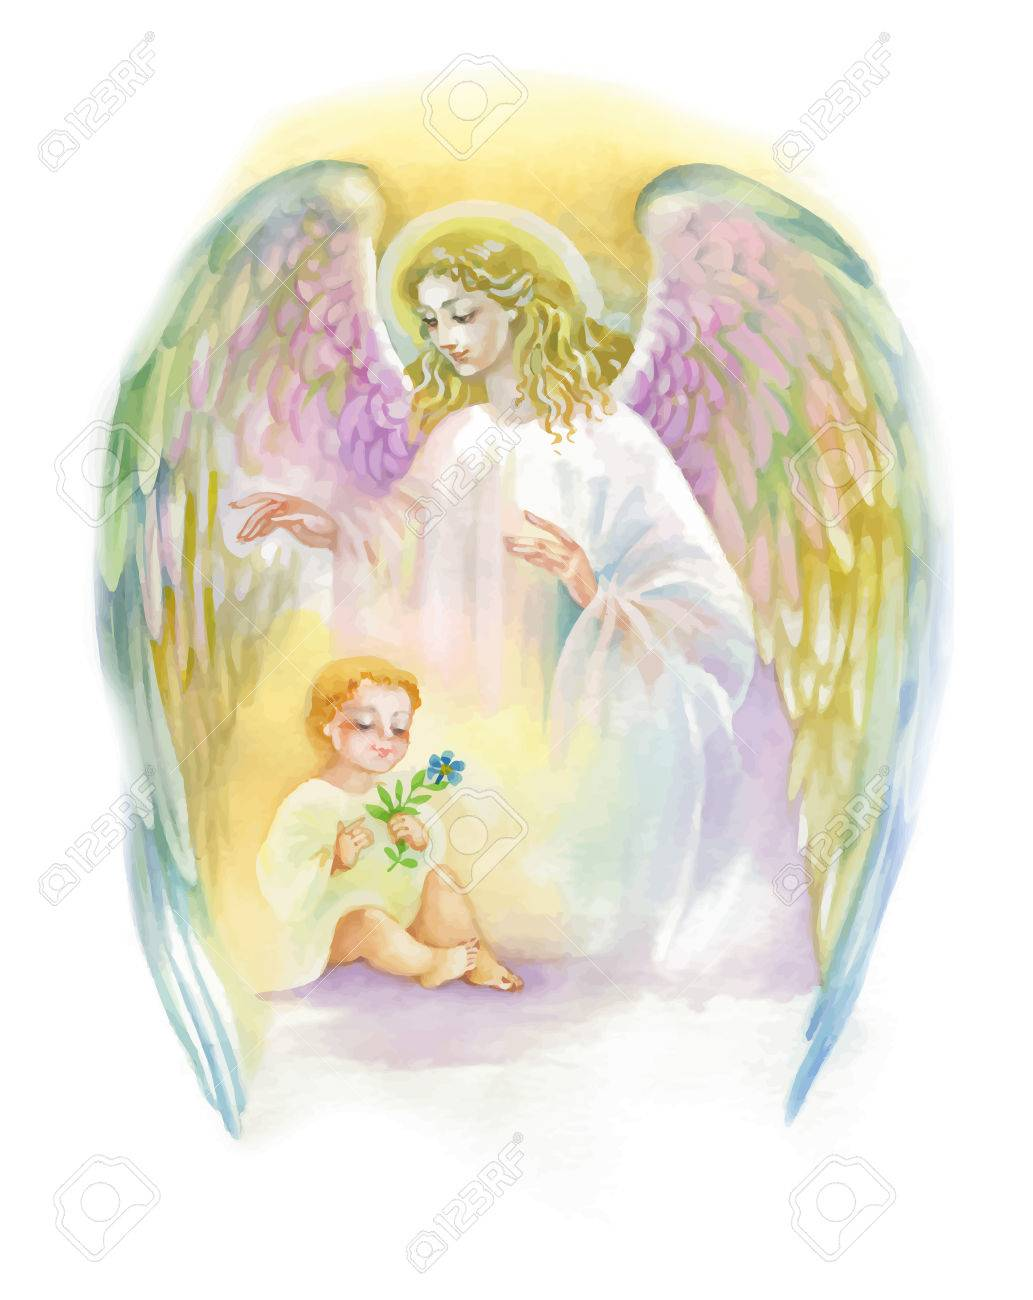 Beautiful Angel with Wings Flying over Child, Watercolor Illustration - 61635026